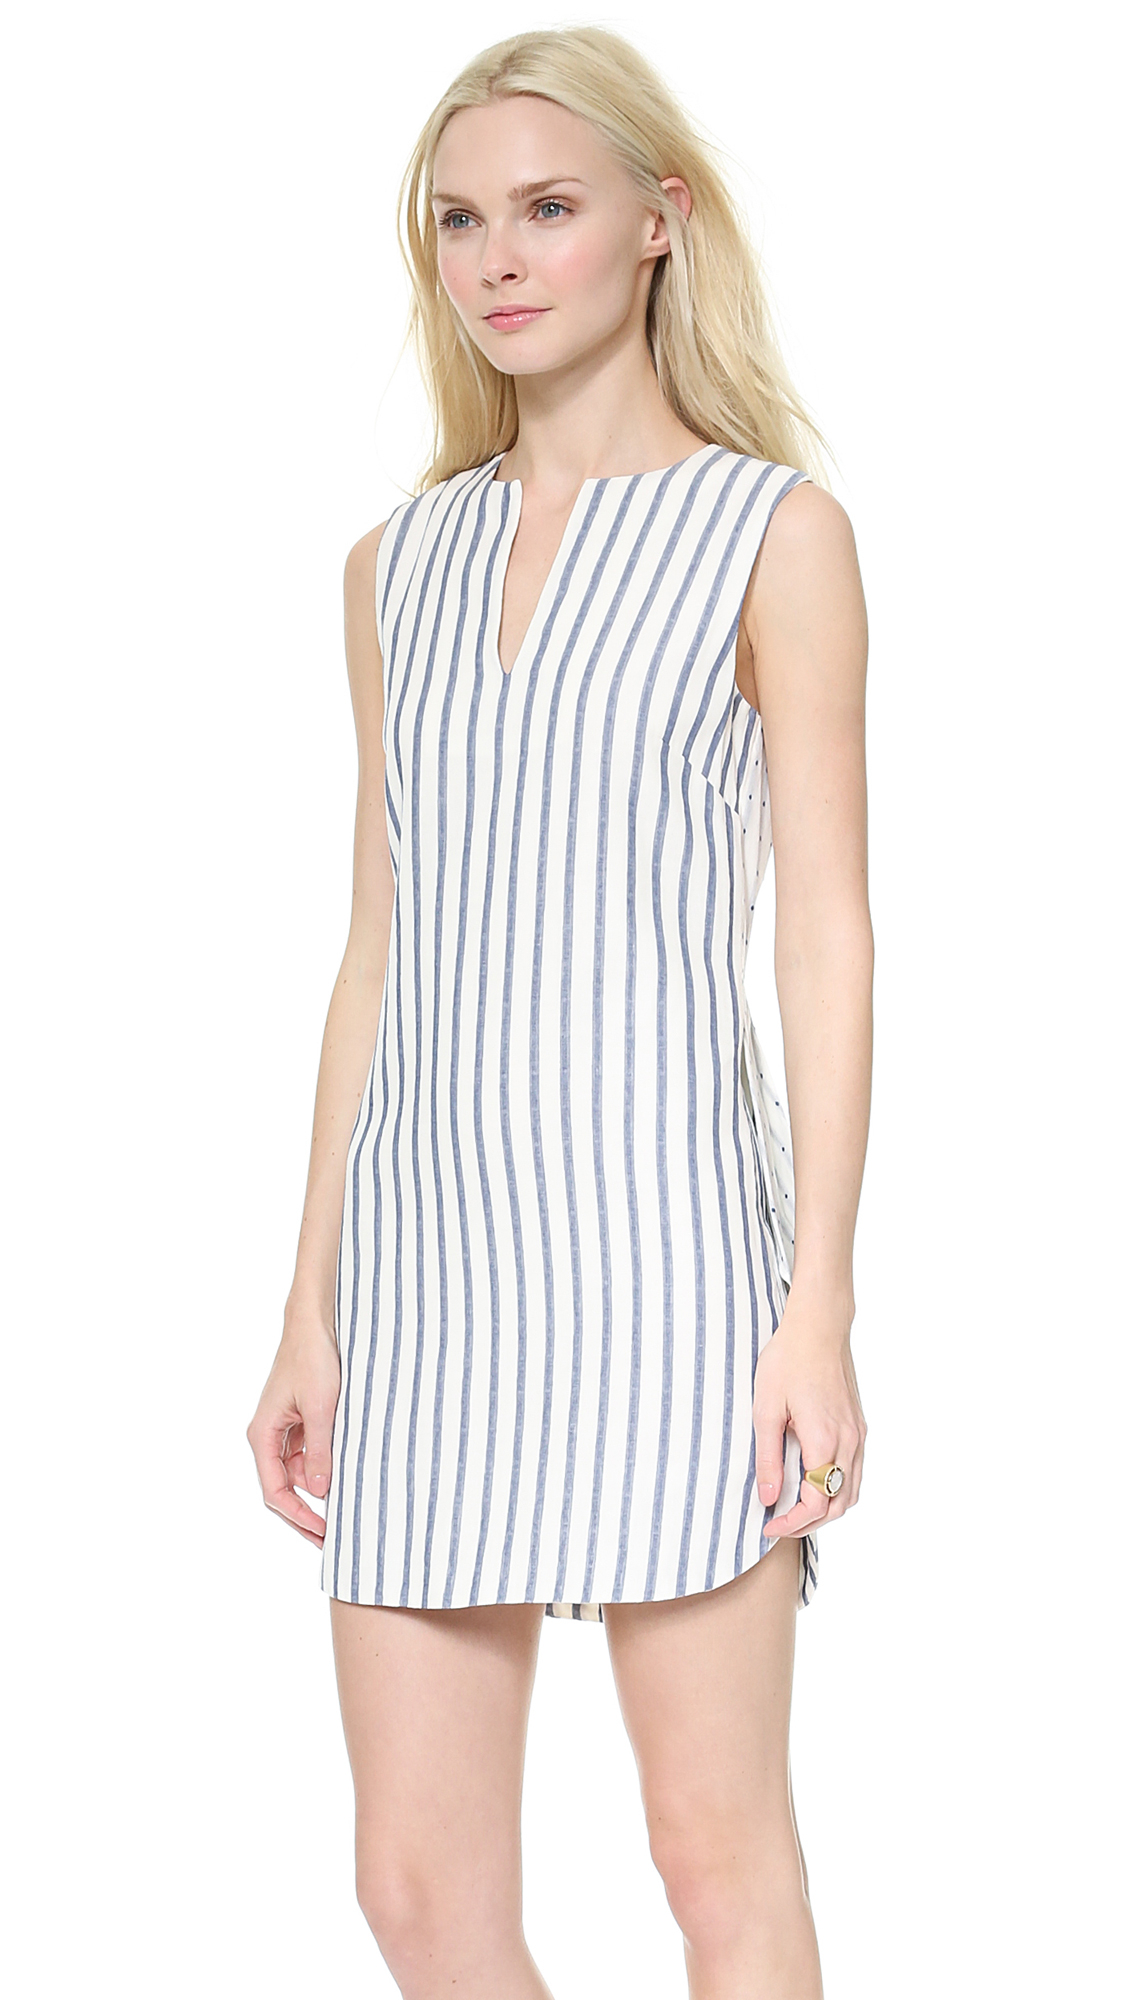 blue and white vertical striped dress wwwimgkidcom